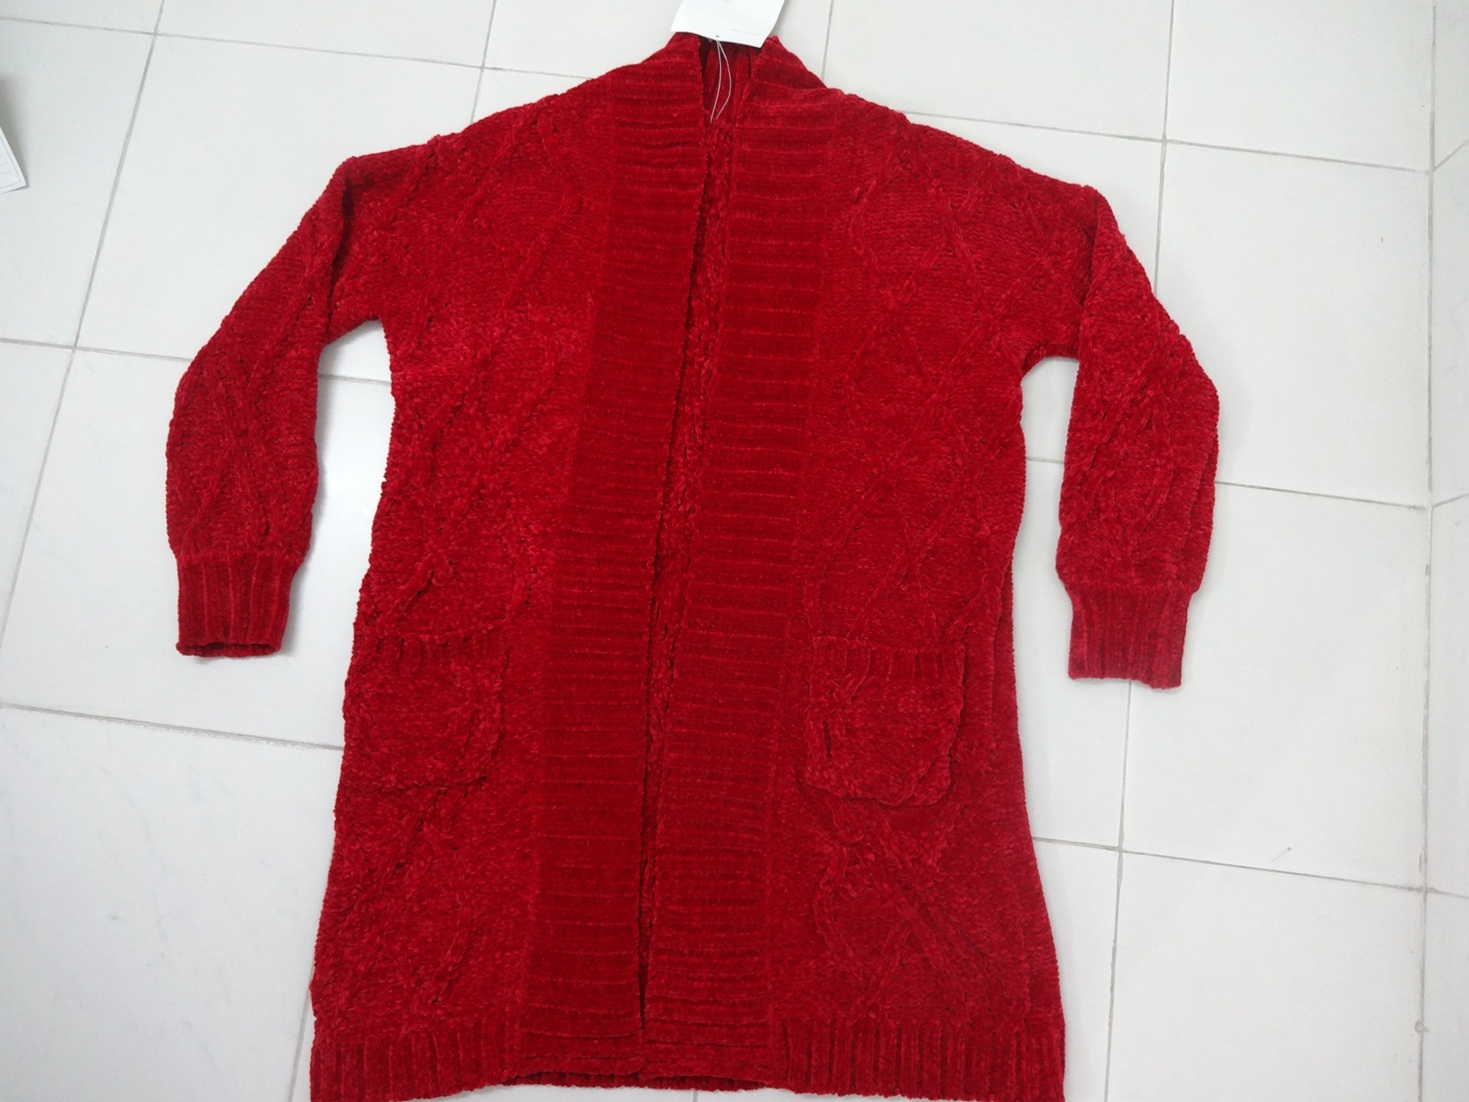 STYLE-1150030012-FRONT